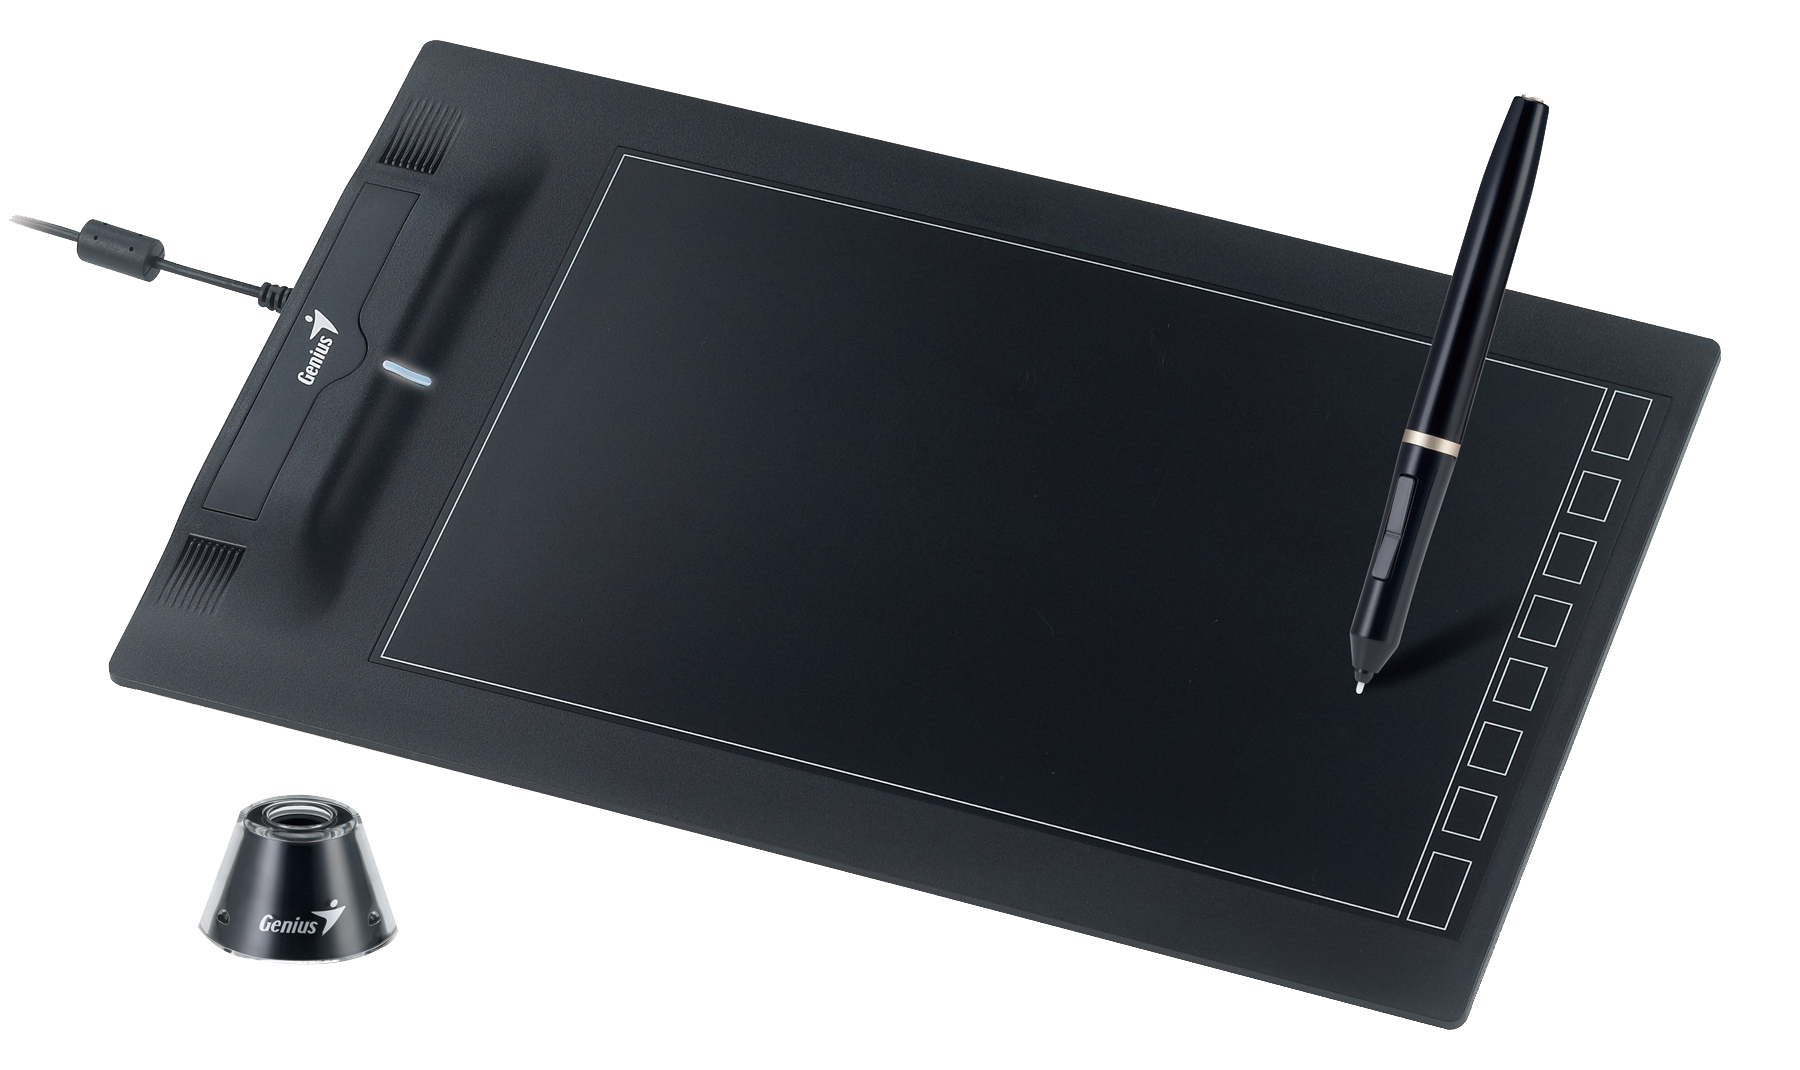 The EasyPen F610E for sketching with great precision.